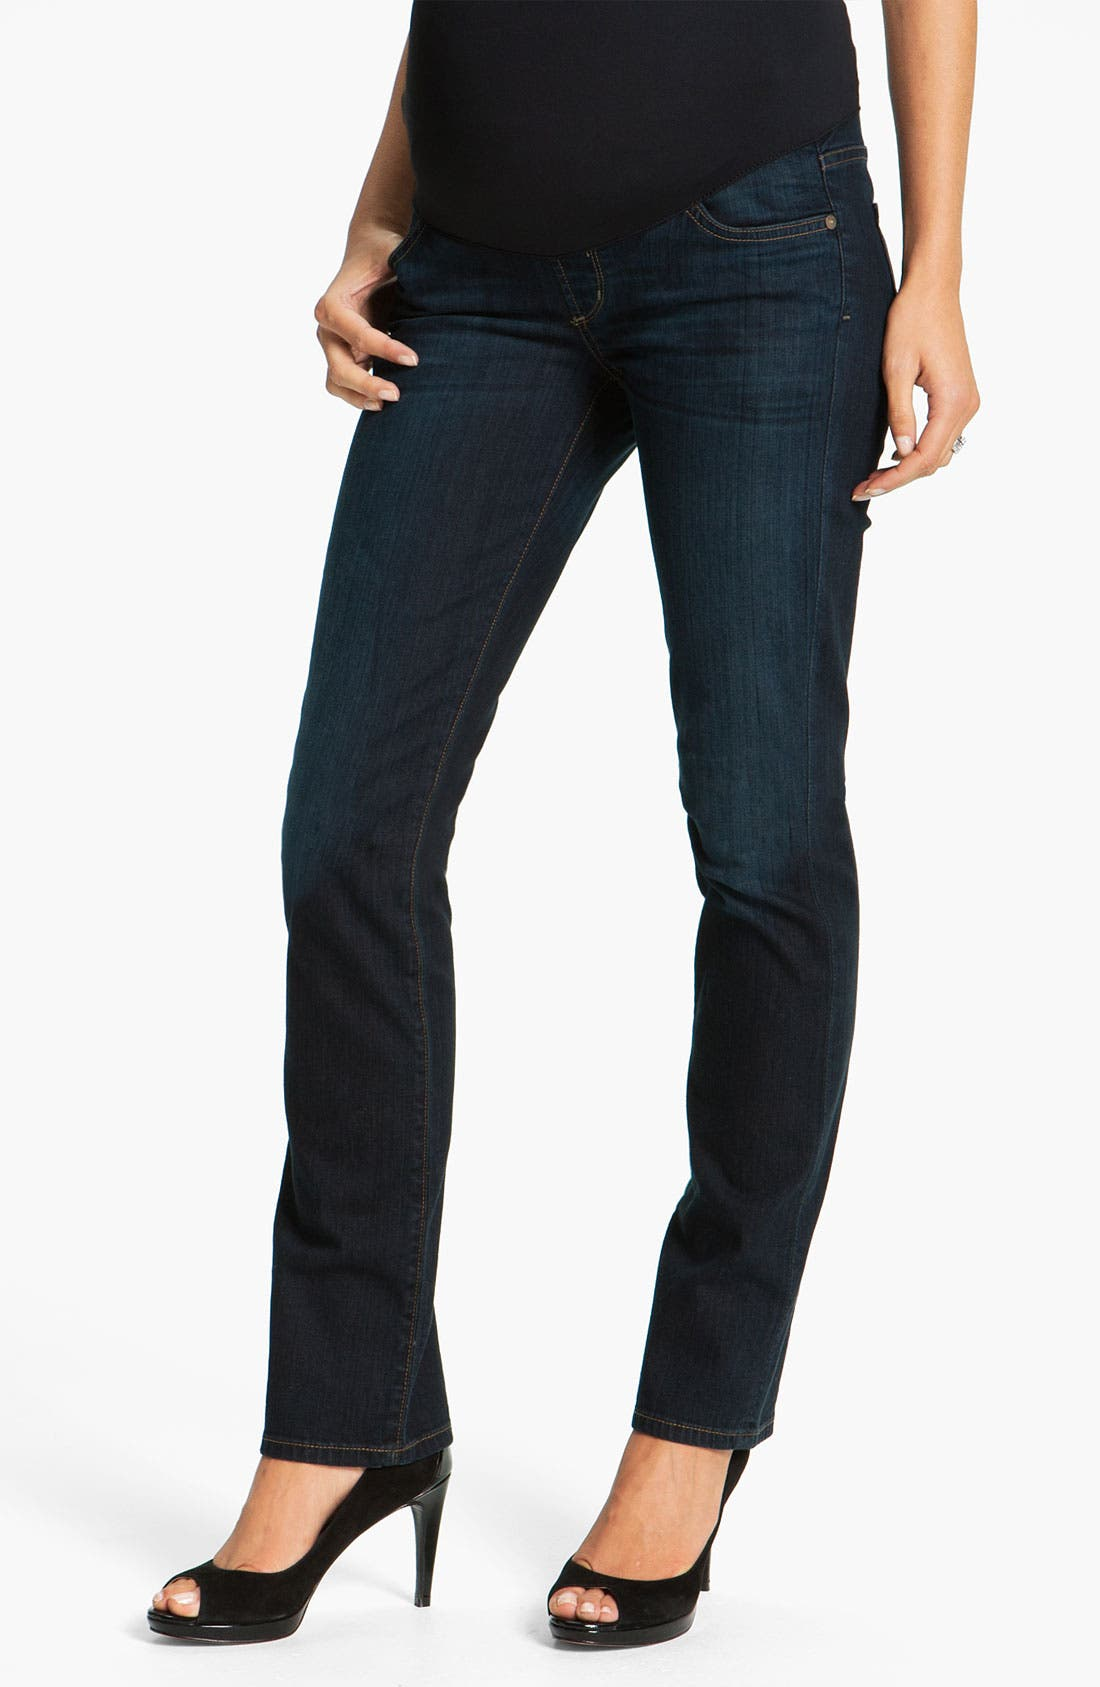 Alternate Image 1 Selected - Citizens of Humanity 'Thompson' Maternity Skinny Jeans (Faith)